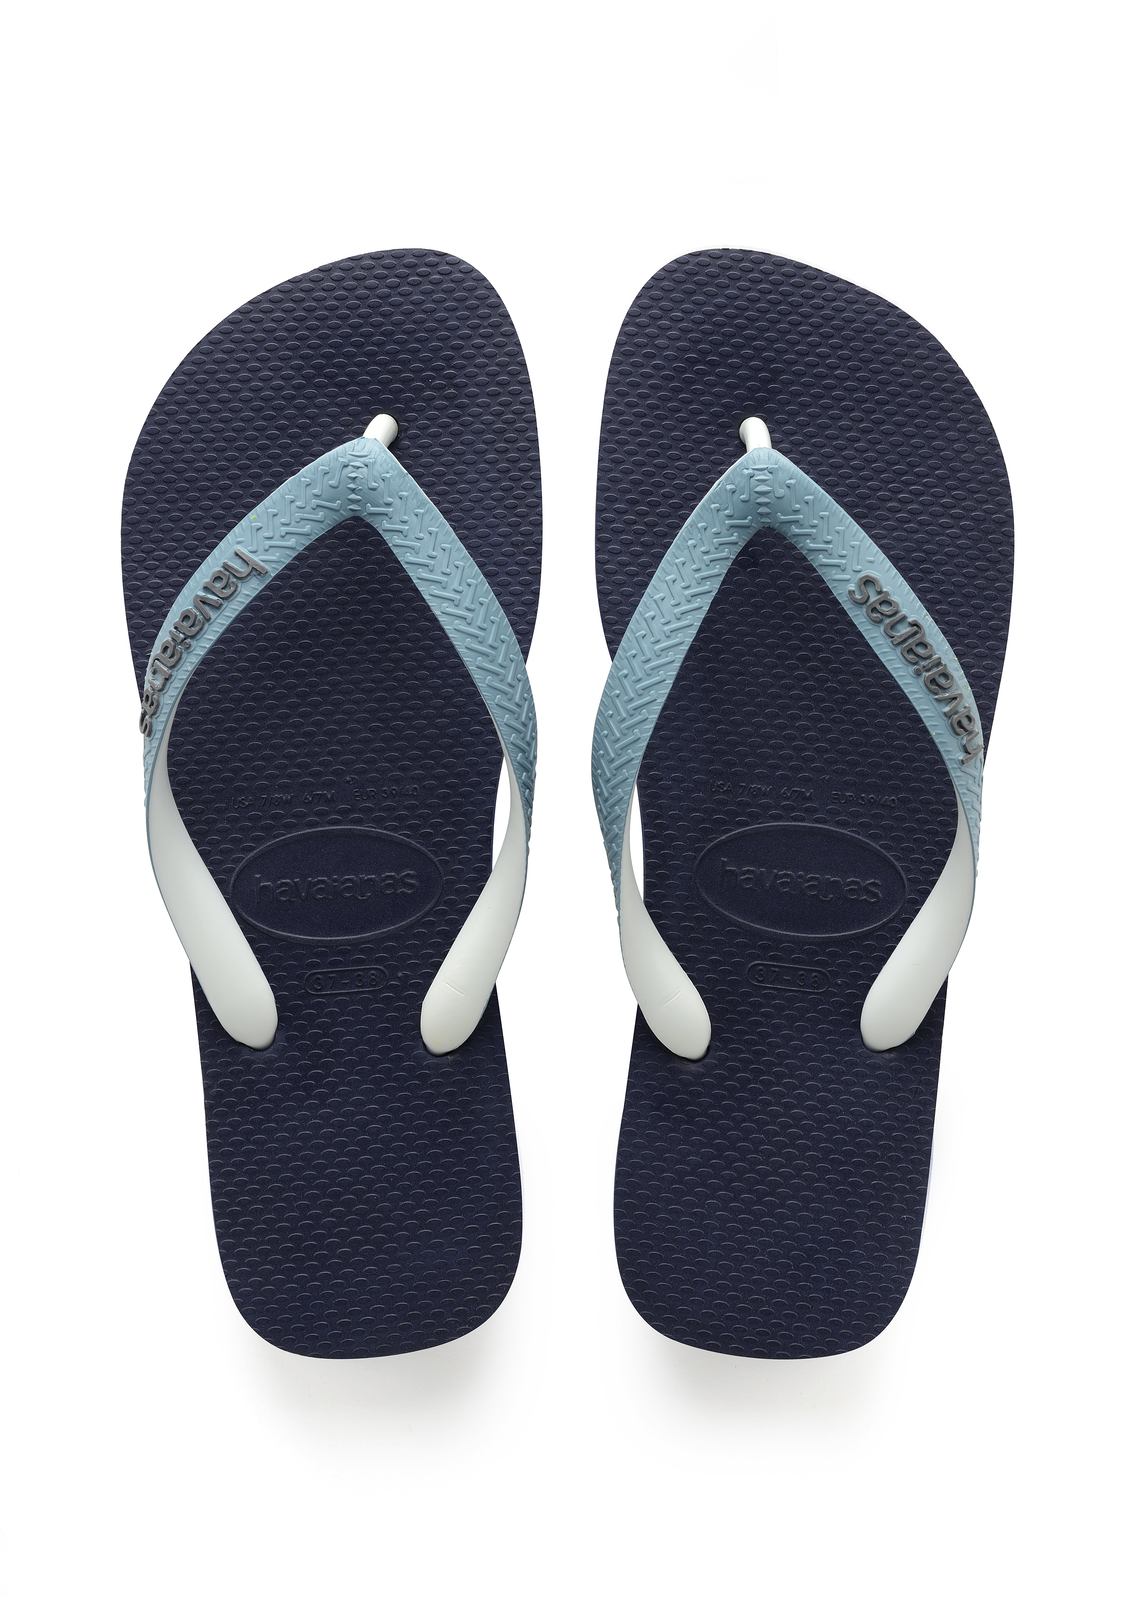 55dbccd2c Havaianas Top Mix Navy Blue Mineral Blue Thongs - Size  35 36 ...